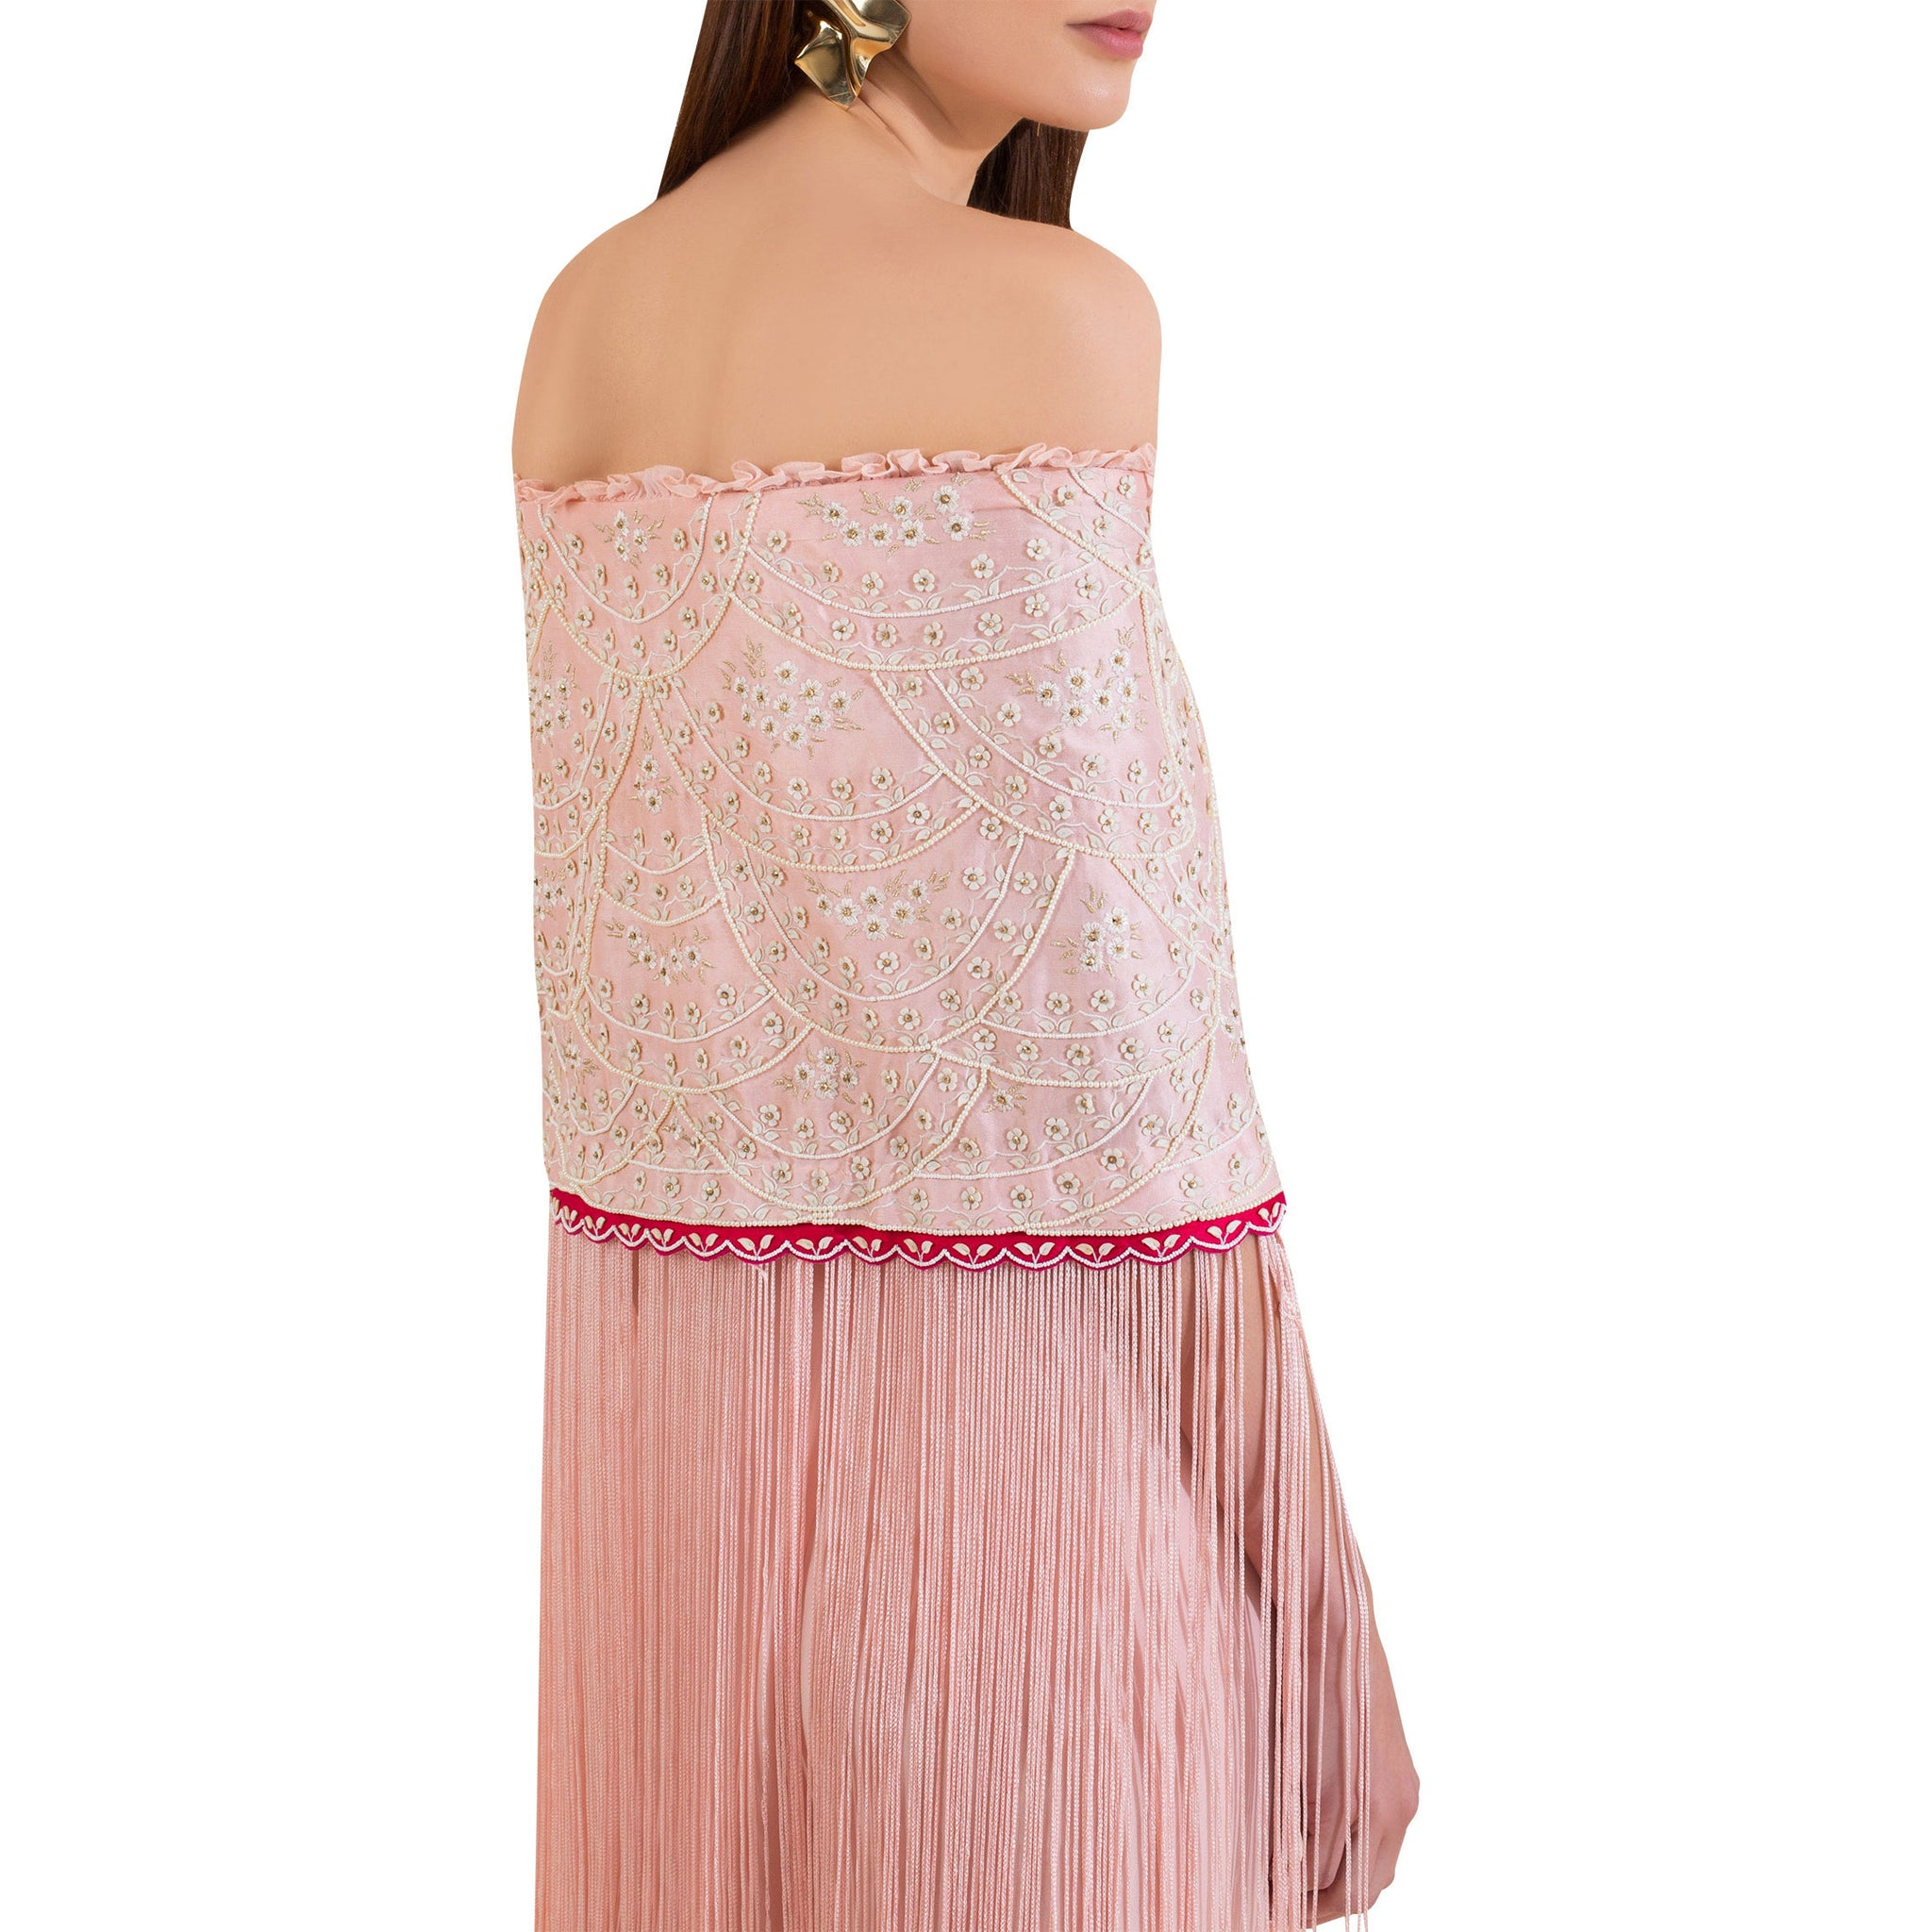 Embroidered Fringed Details Top with Layered Palazzo Pants